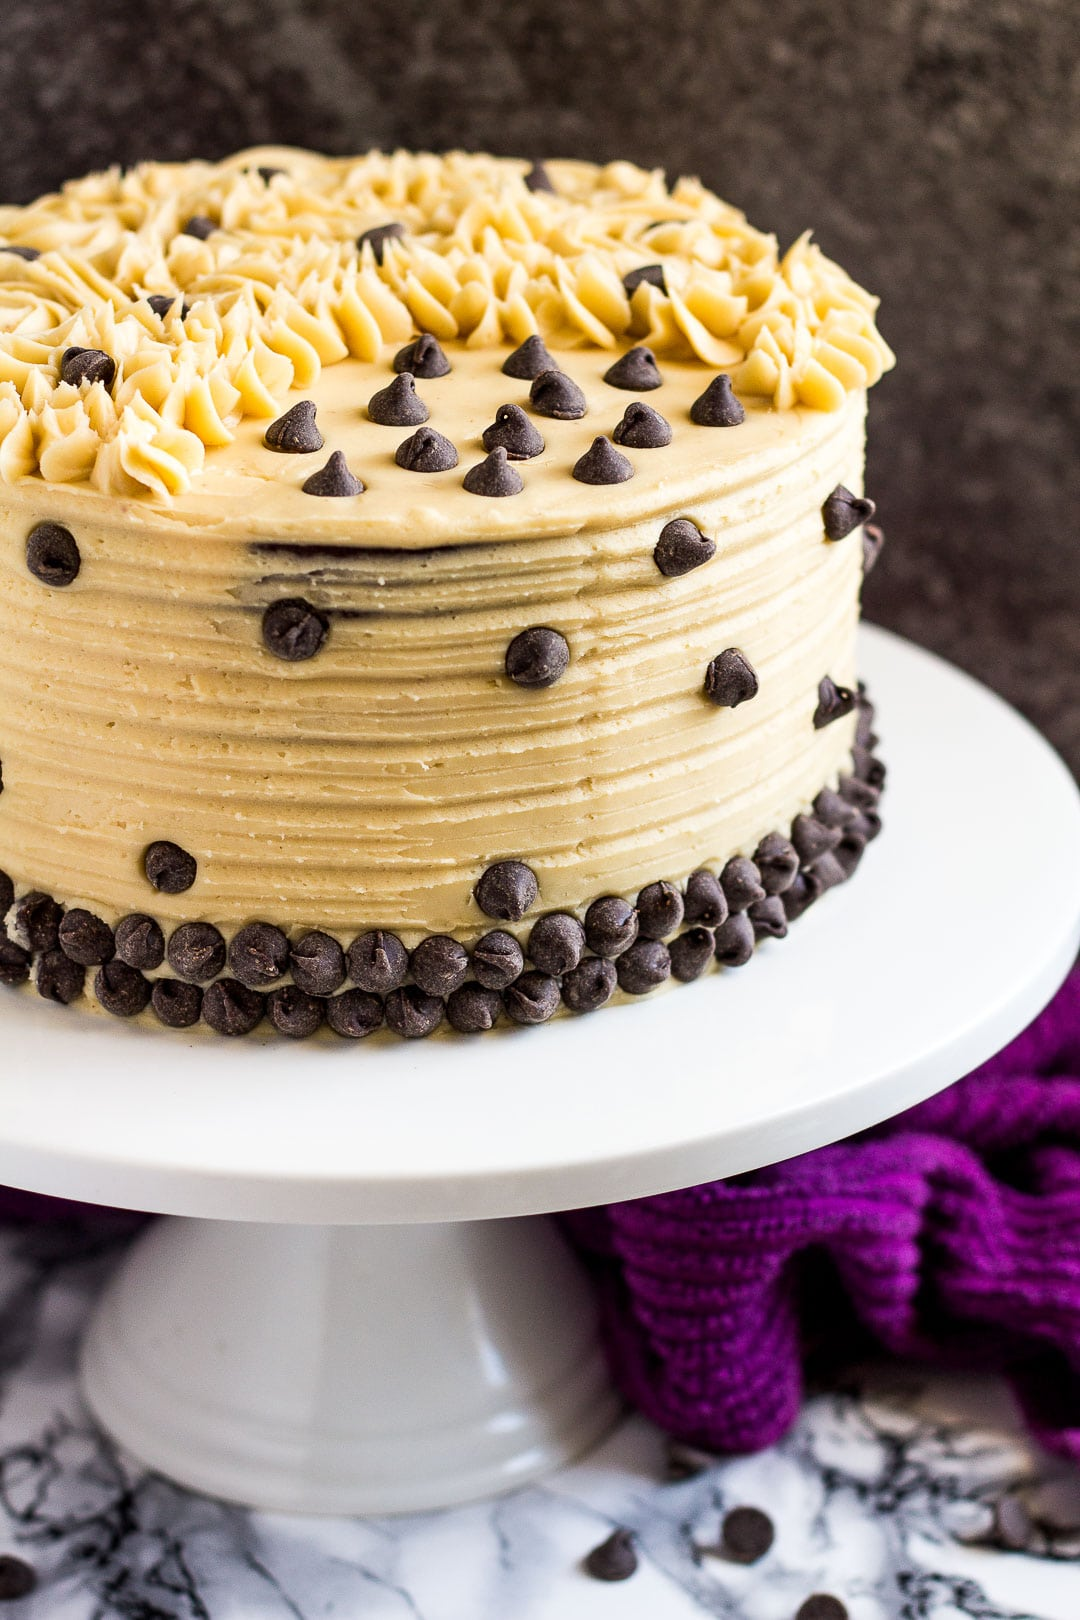 Mocha layer cake studded with chocolate chips on a white cake stand.